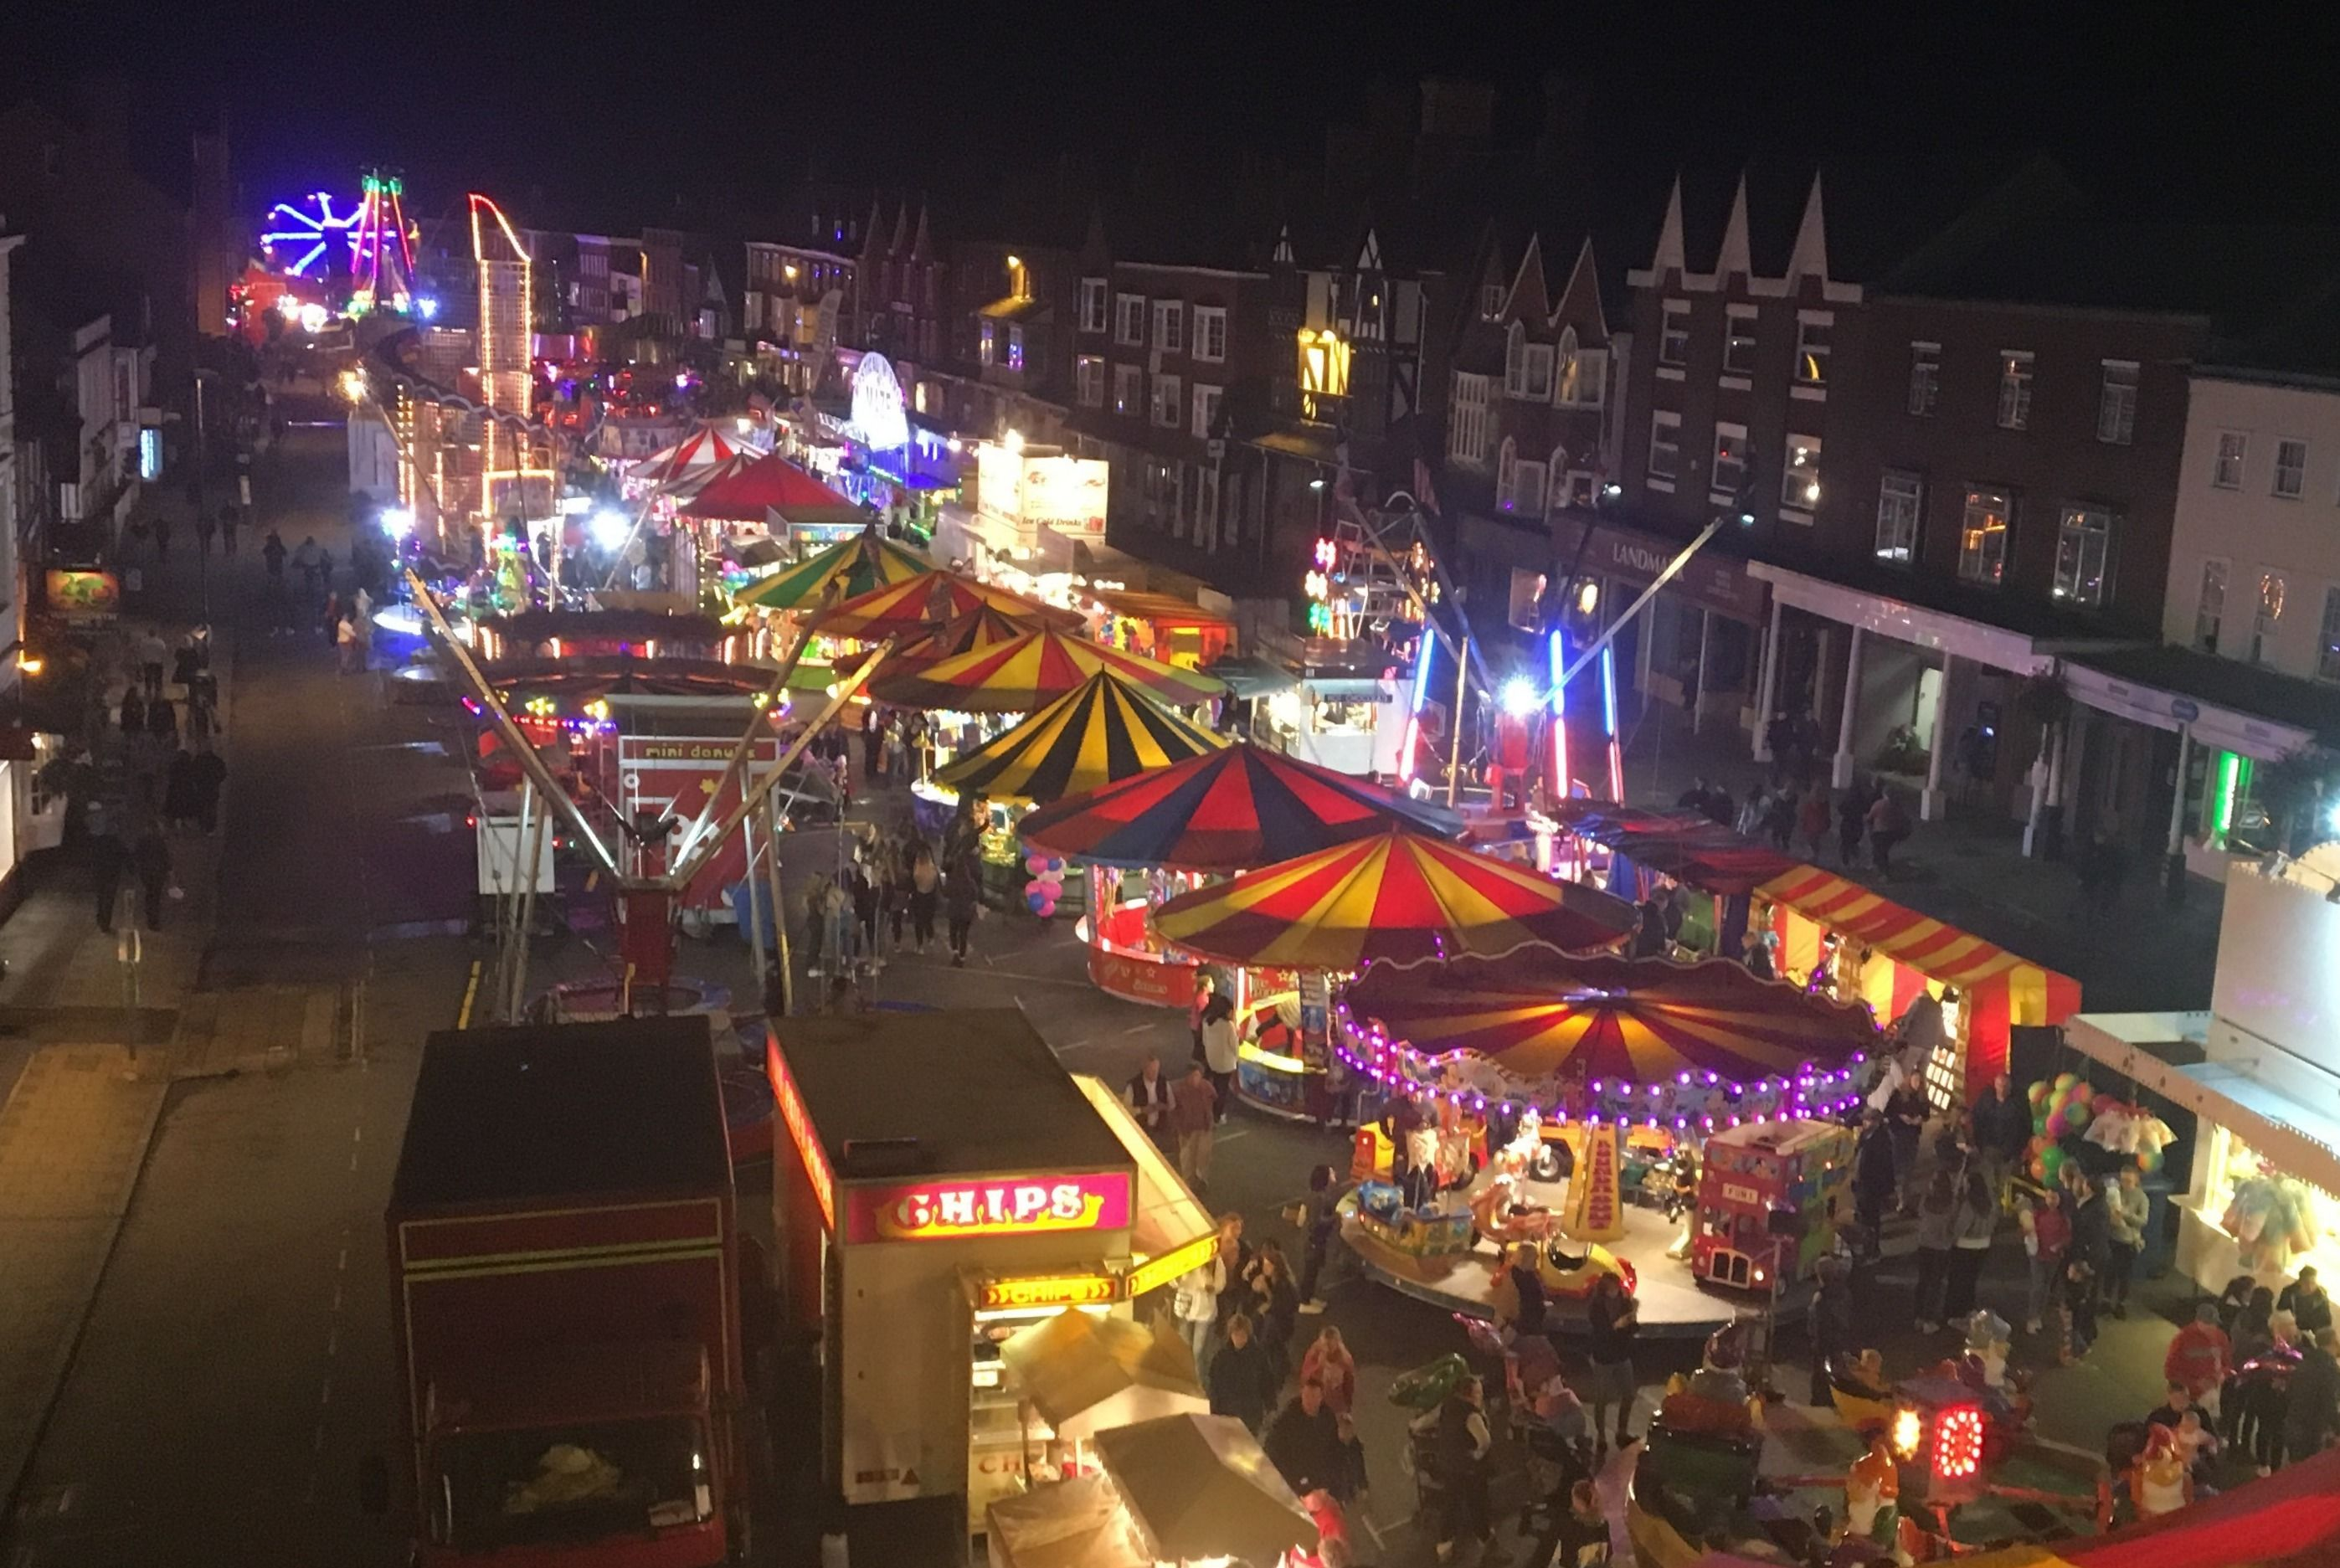 17 October - Mop Fair